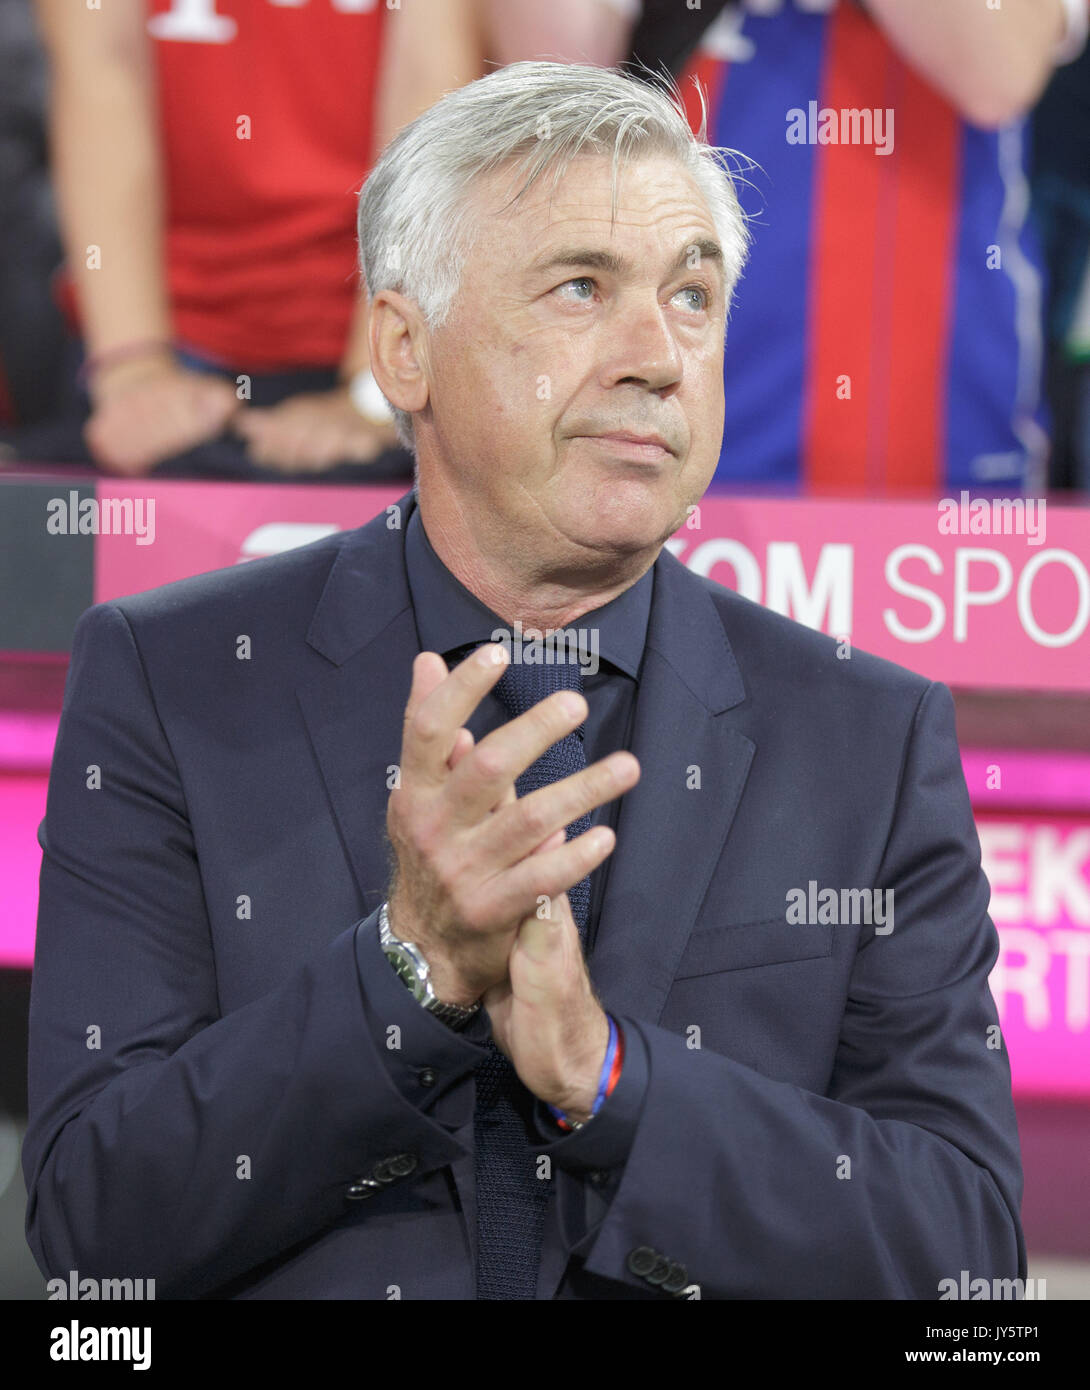 Deutschland. 18th Aug, 2017. Trainer Carlo ANCELOTTI (FC Bayern), Portrait/Portraet/Portrat/Kopf, klatscht GES/ Fussball/ 1. Bundesliga: FC Bayern Munich - Bayer 04 Leverkusen, 18.08.2017 -- Football/ Soccer 1st. German Bundesliga Division: Bavaria Munich vs Bayer 04 Leverkusen, Munich, August 18, 2017 | Verwendung weltweit Credit: dpa/Alamy Live News - Stock Image